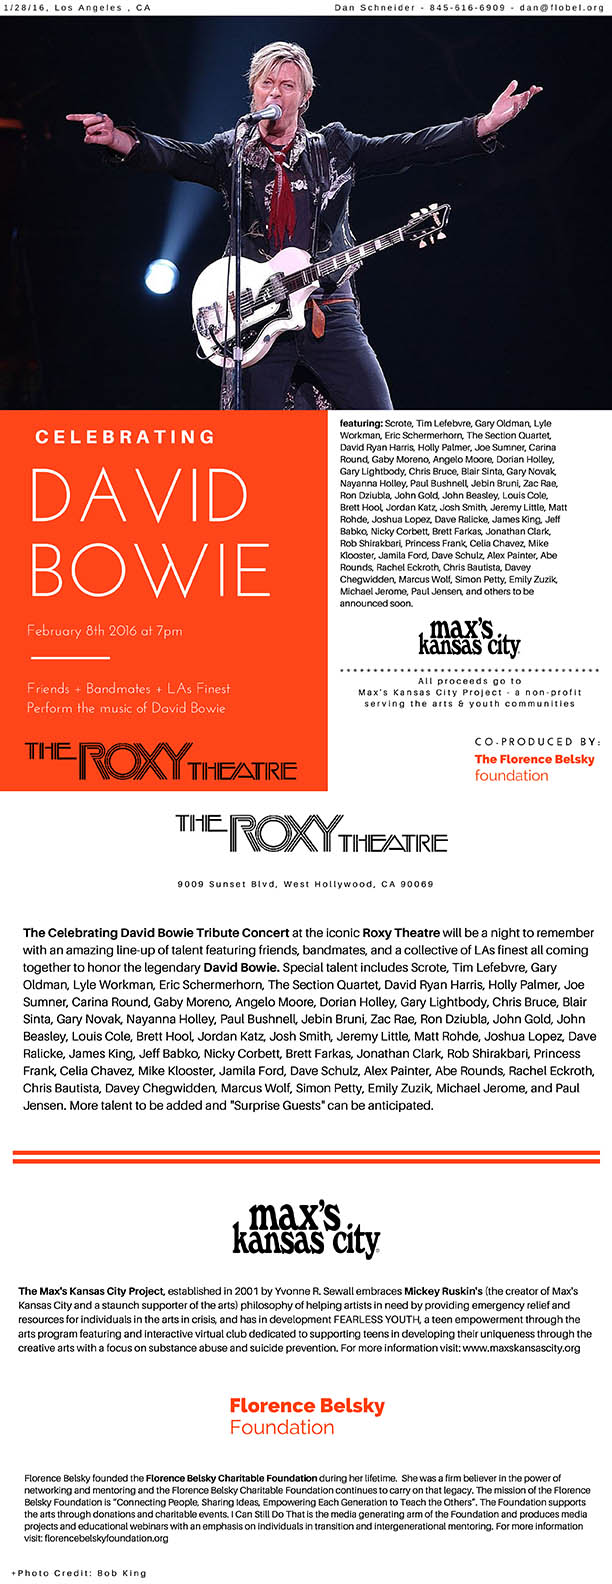 David Bowie Press Release